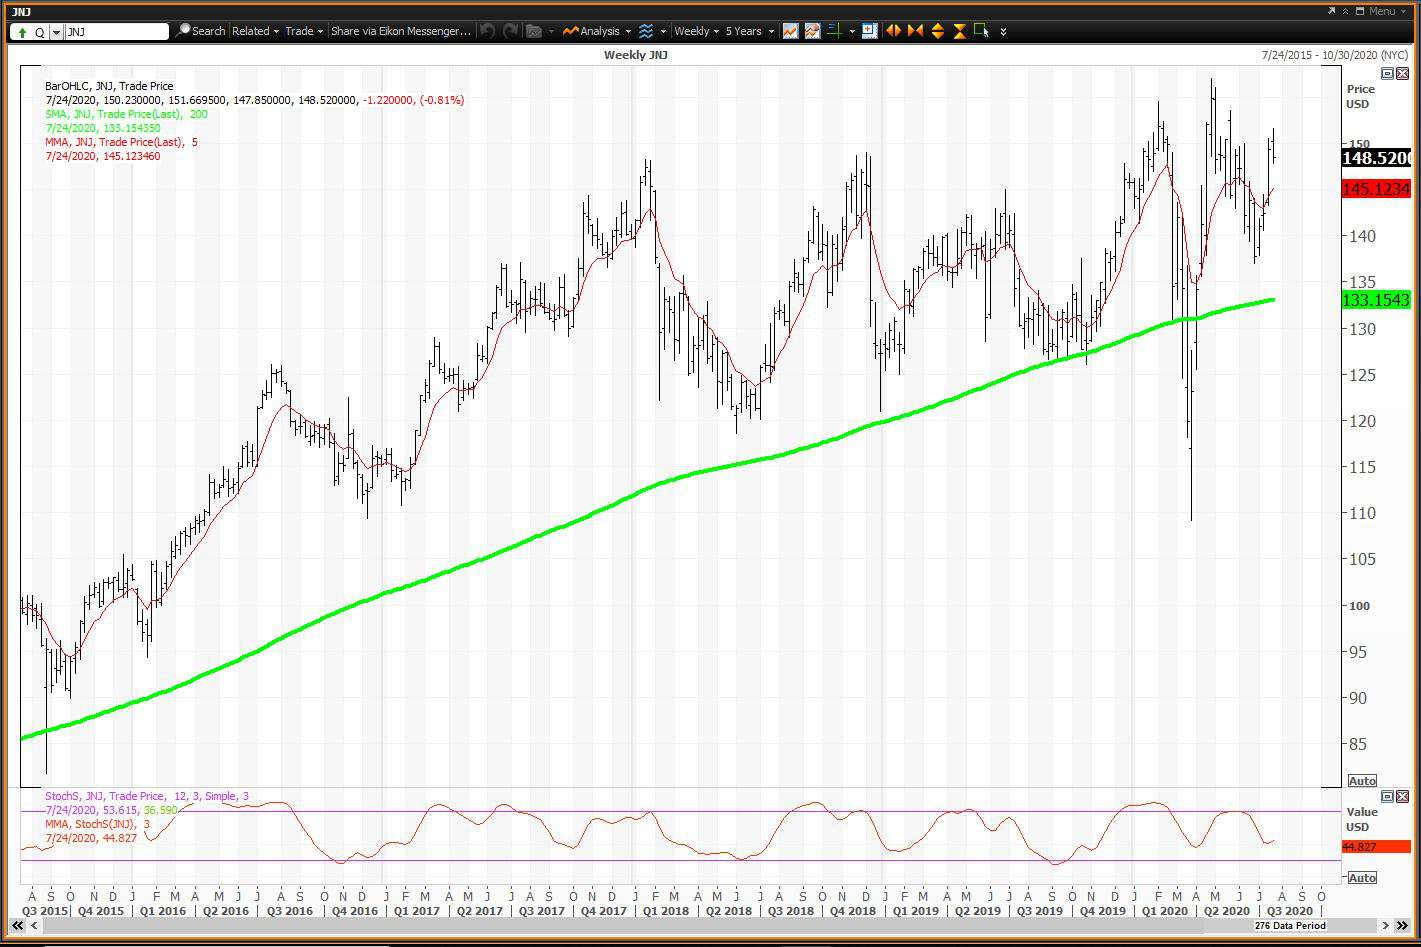 Weekly chart showing the share price performance of Johnson & Johnson (JNJ)